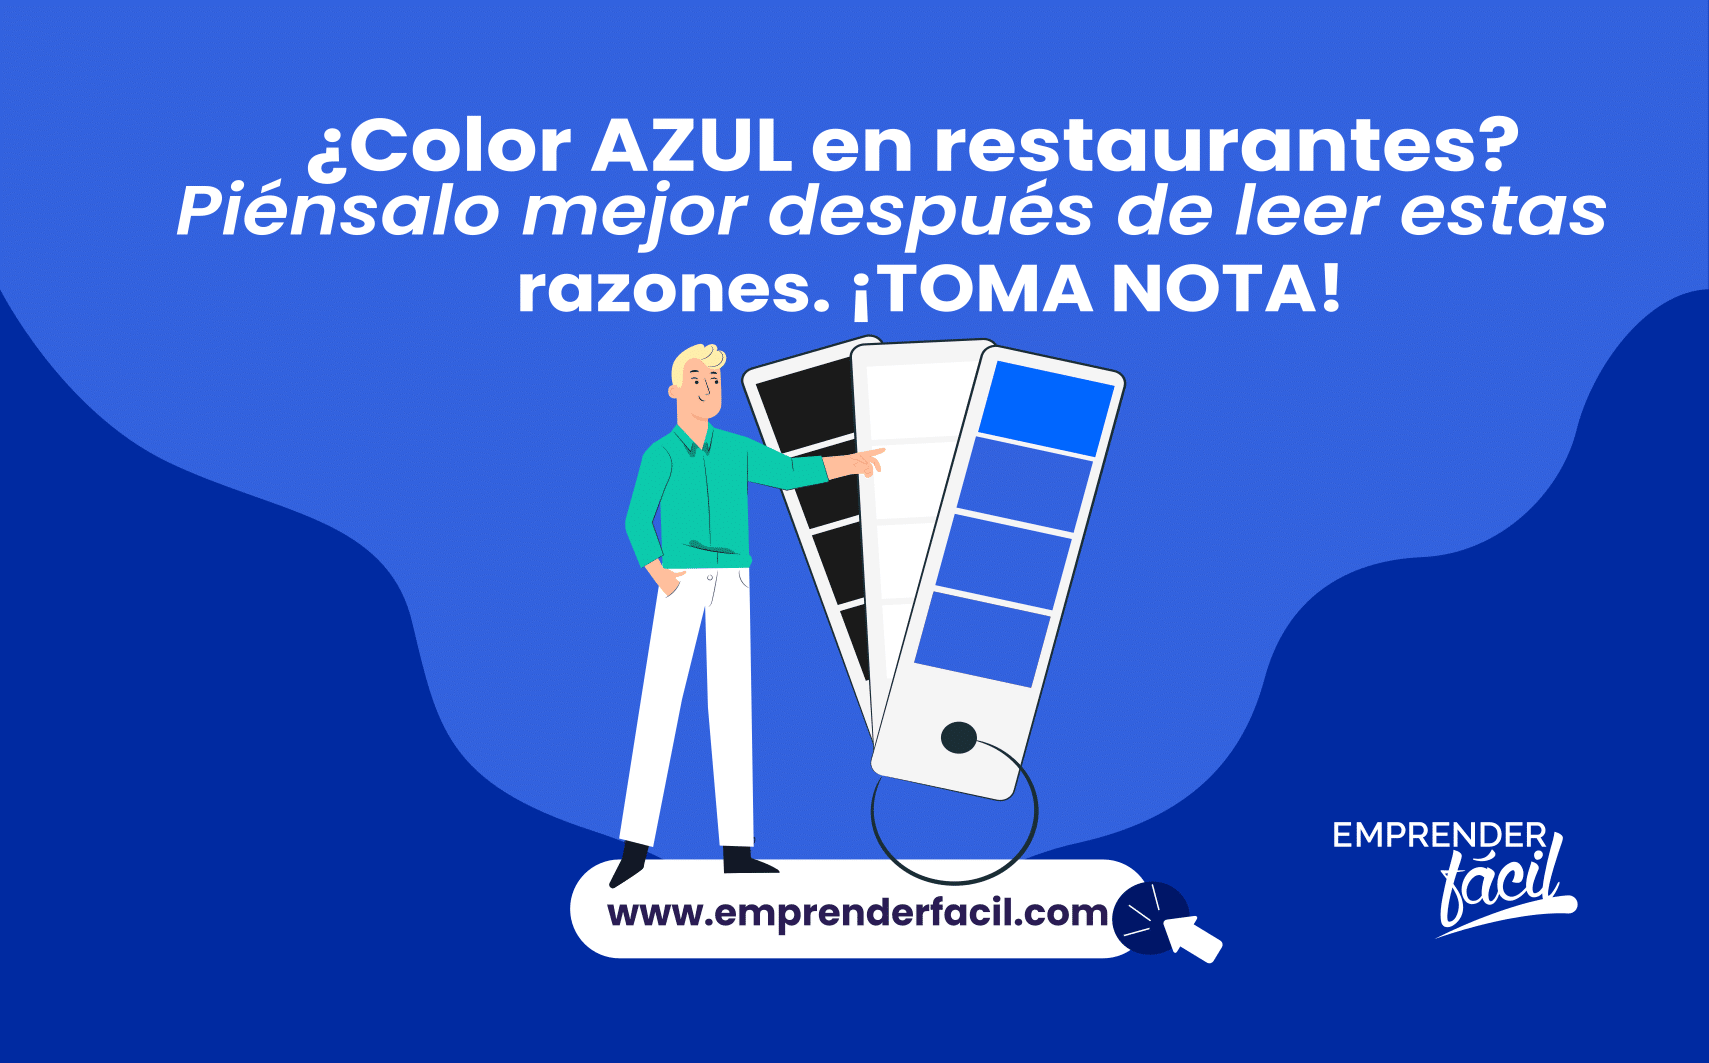 El color azul en restaurantes.